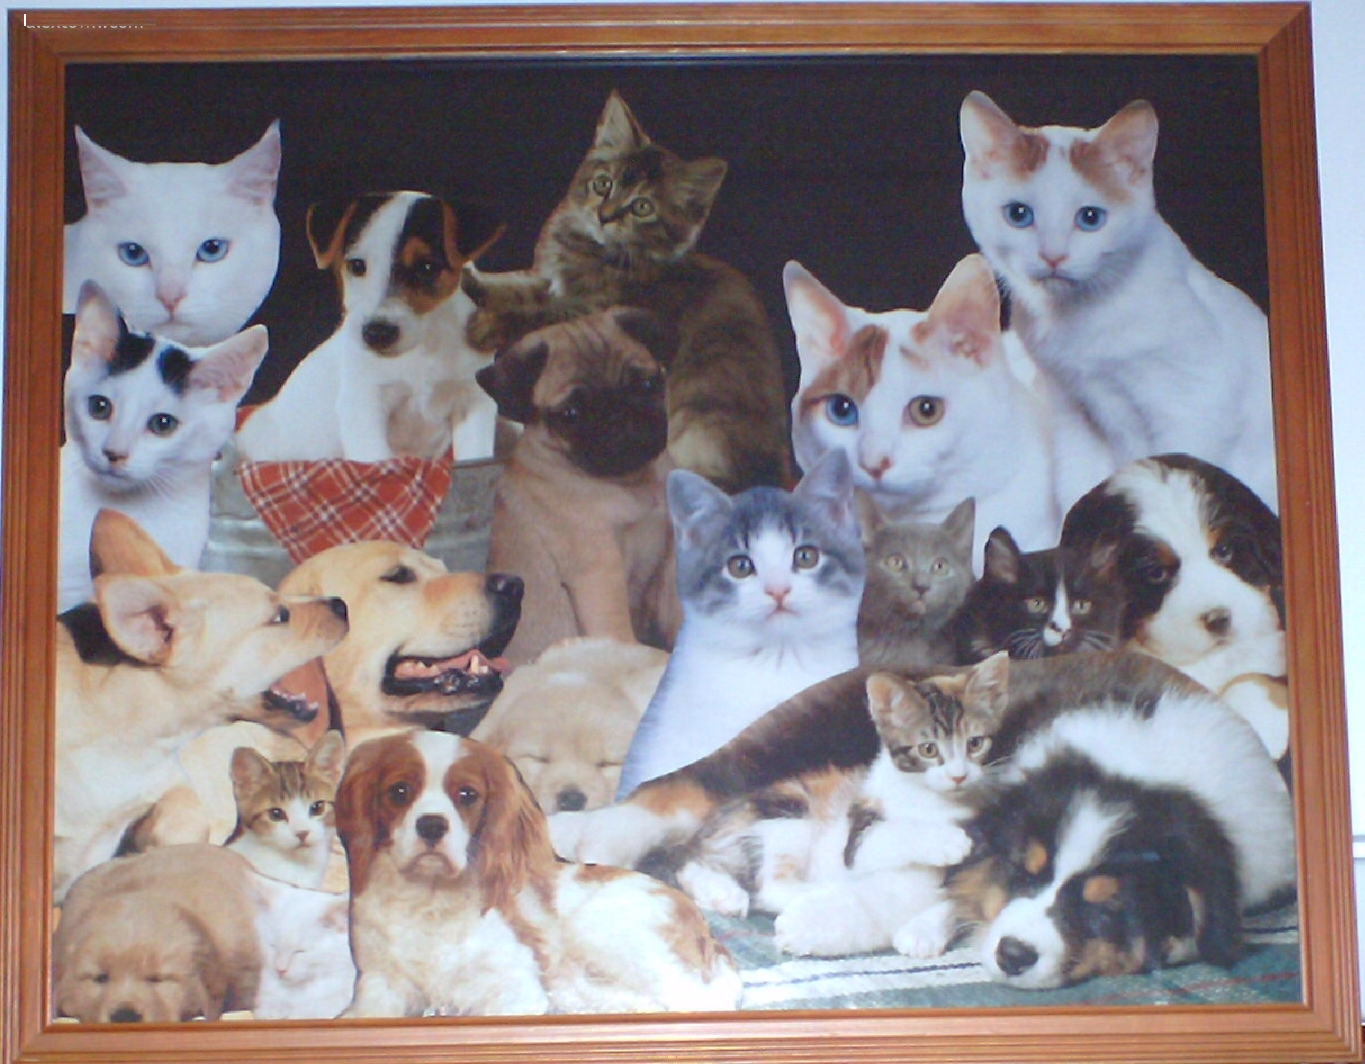 Cat Collage with Kittens and Puppies